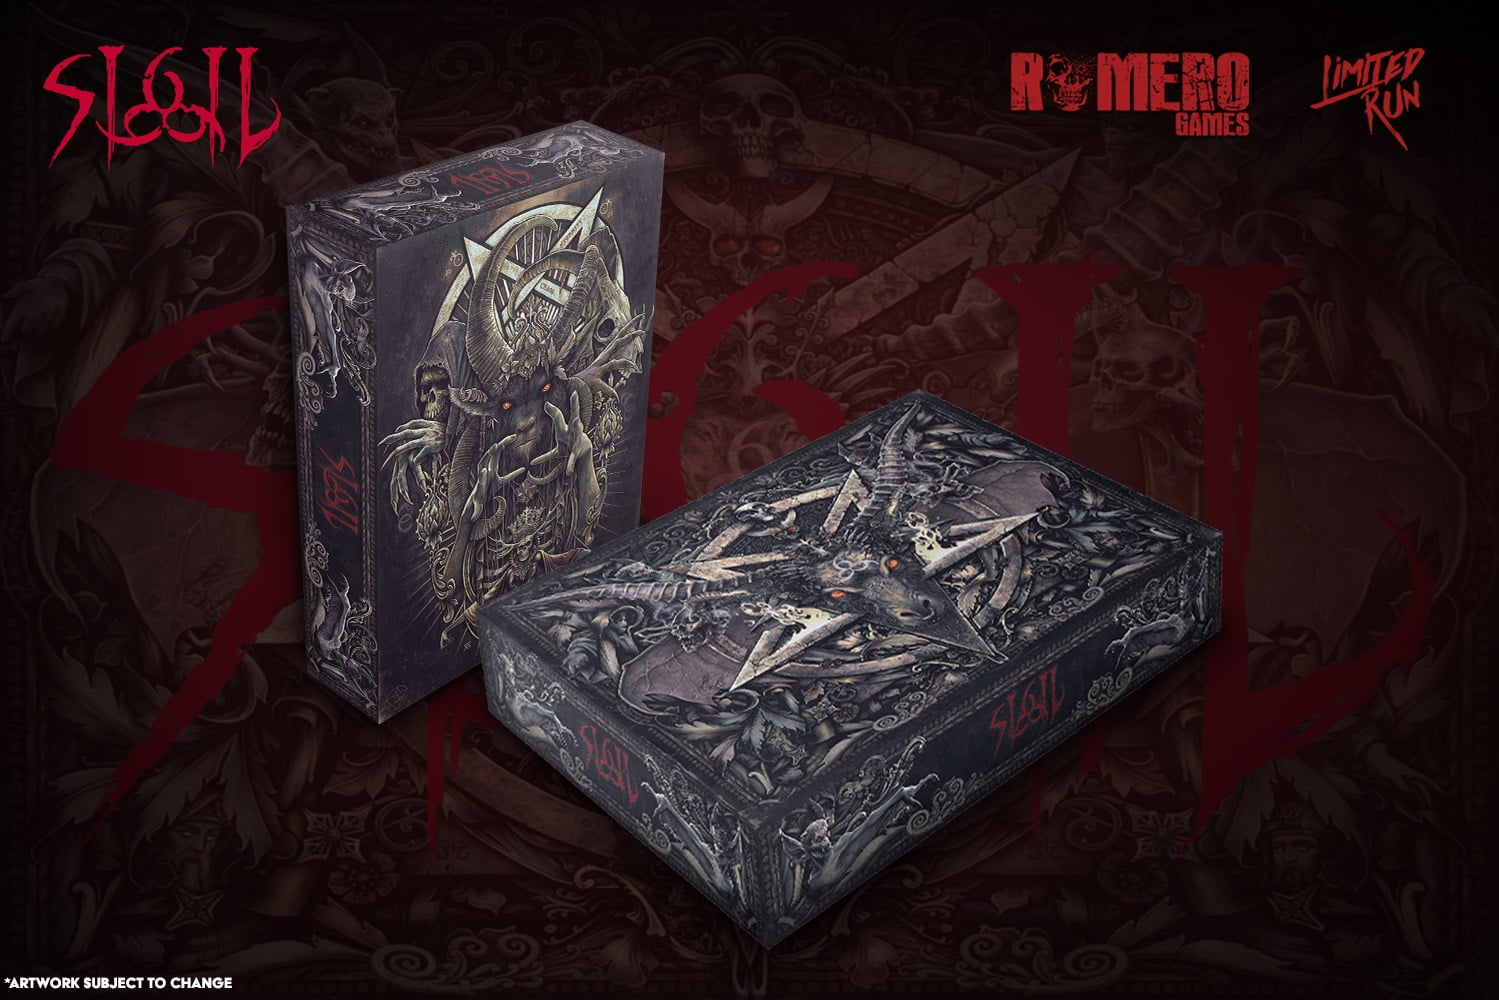 An image contains Sigil box by Romero games